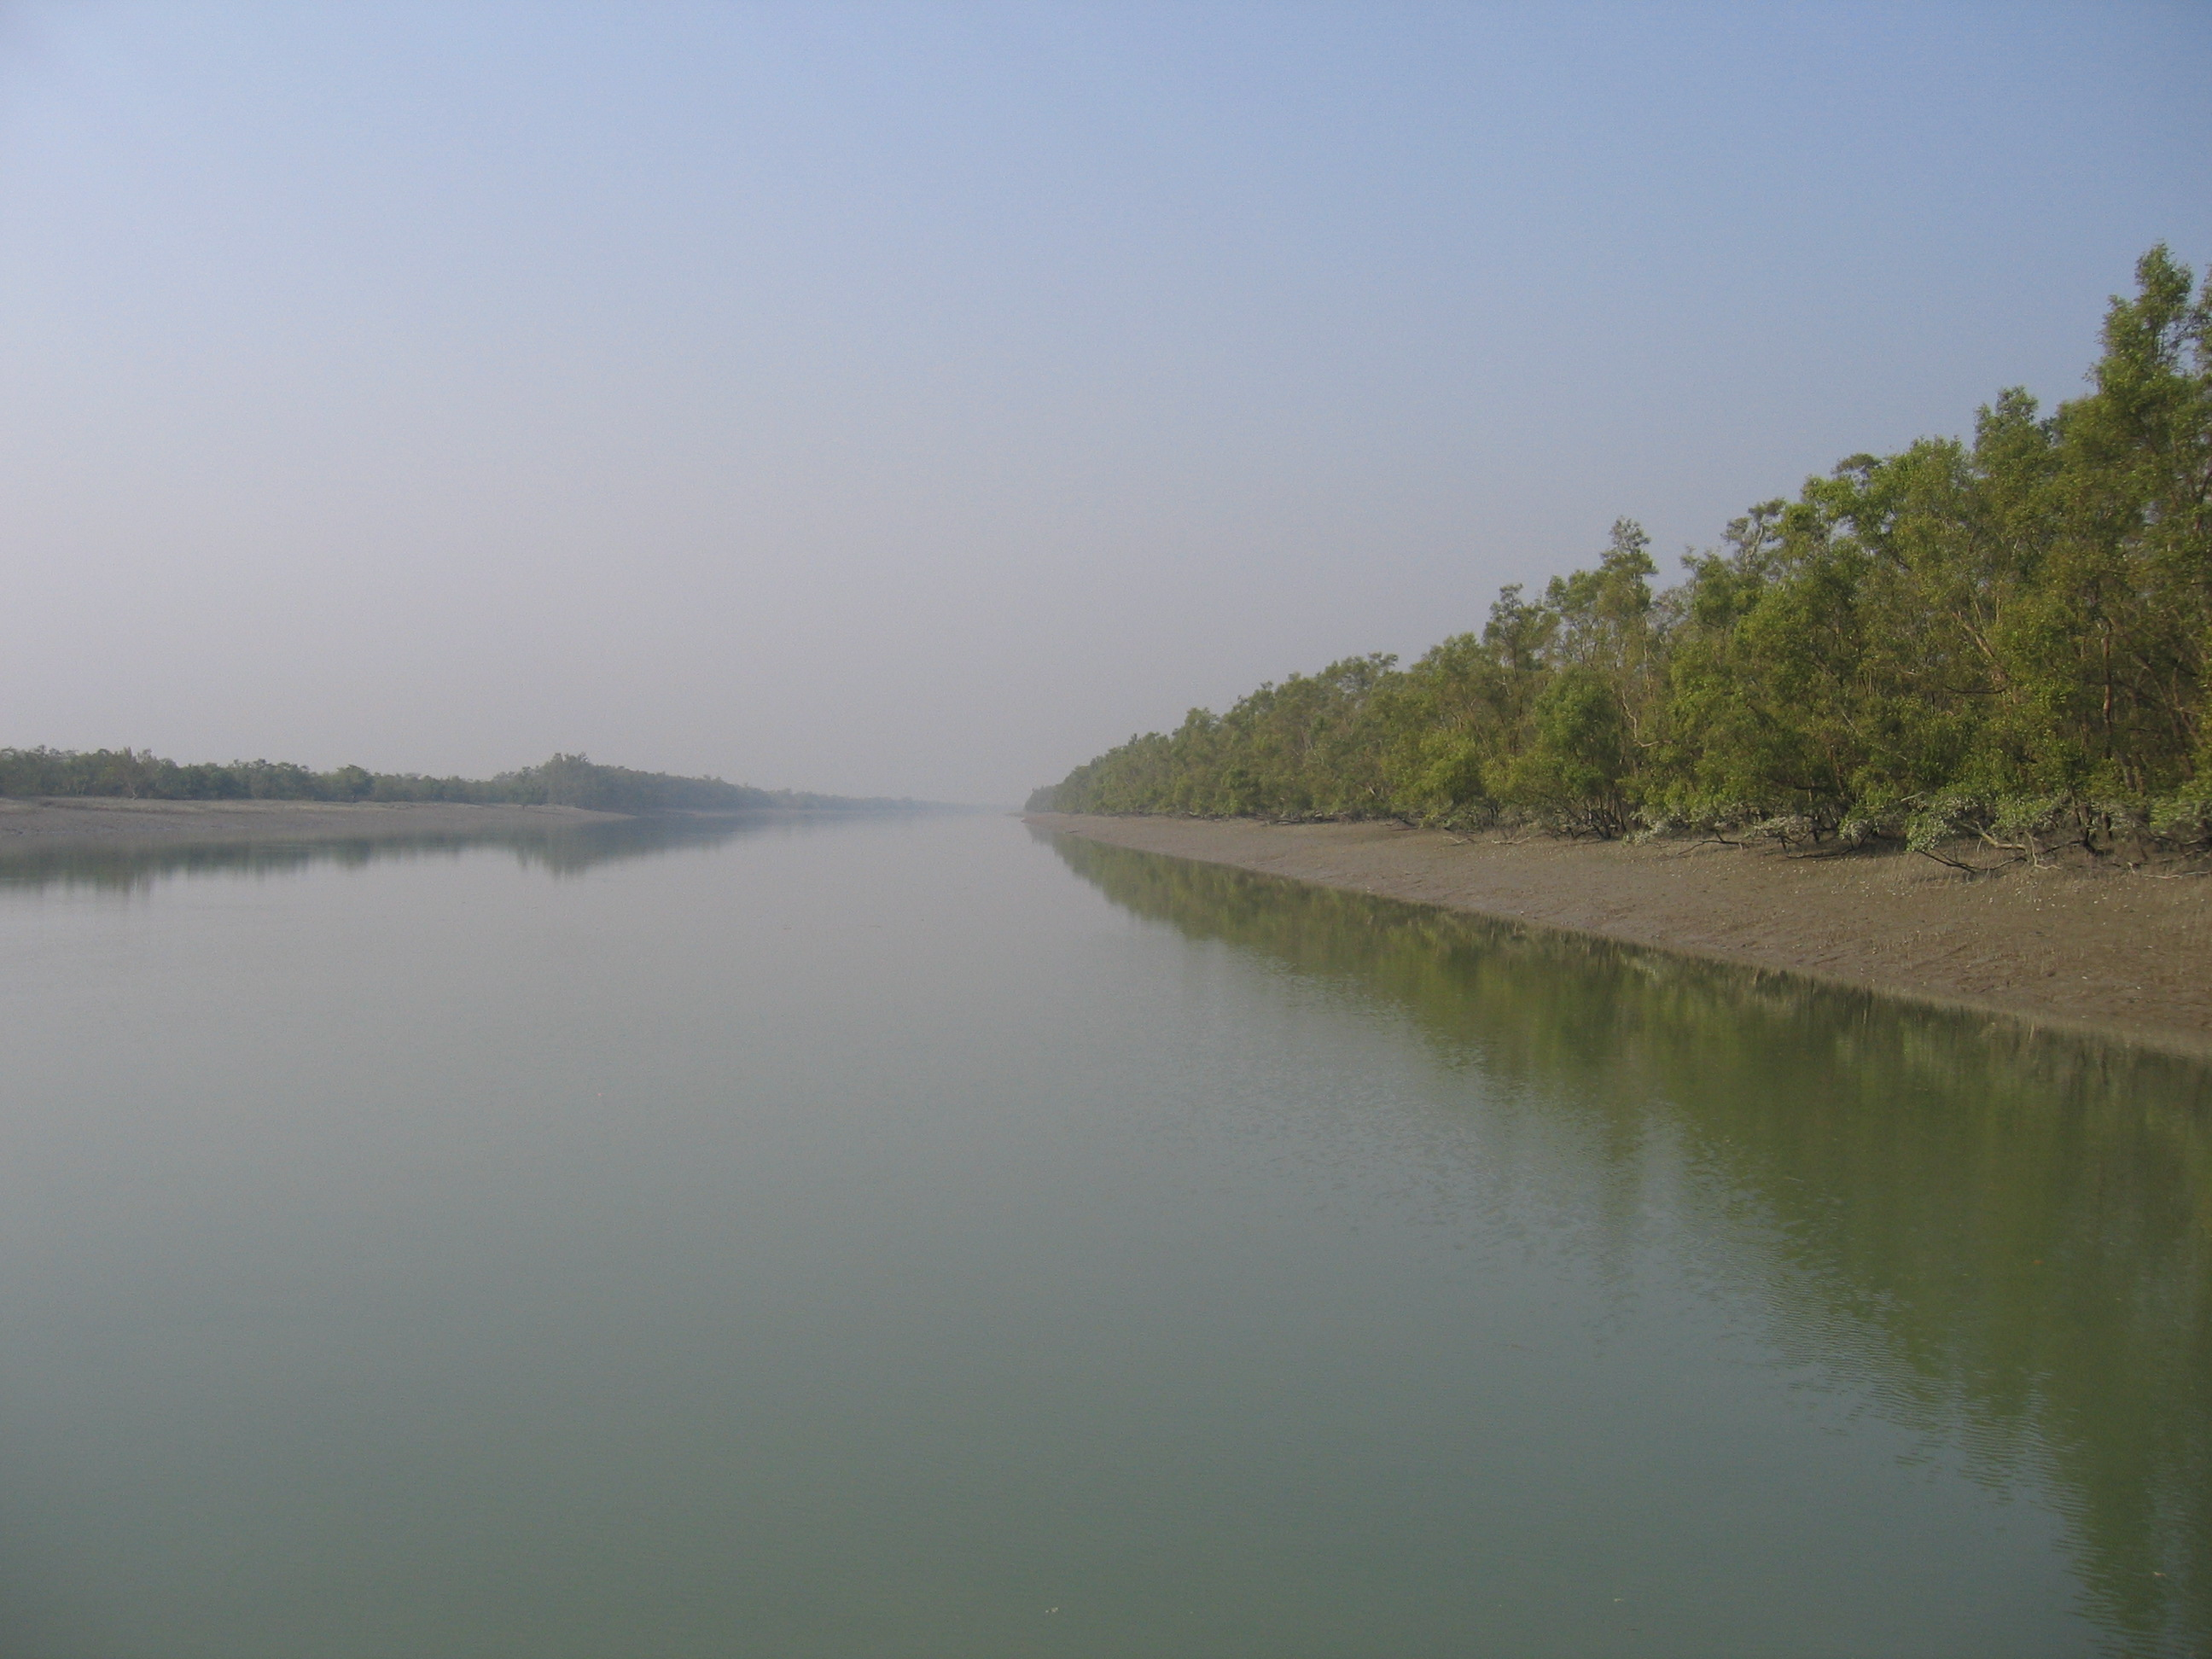 INTEGRATING CHANNEL CUT-OFF AND CULTURAL LANDSCAPE:  A CASE STUDY OF CHAKUNDI VILLAGE AMIDST THE CHAR- CHAKUNDI CUT-OFF OF RIVER BHAGIRATHI, WEST BENGAL